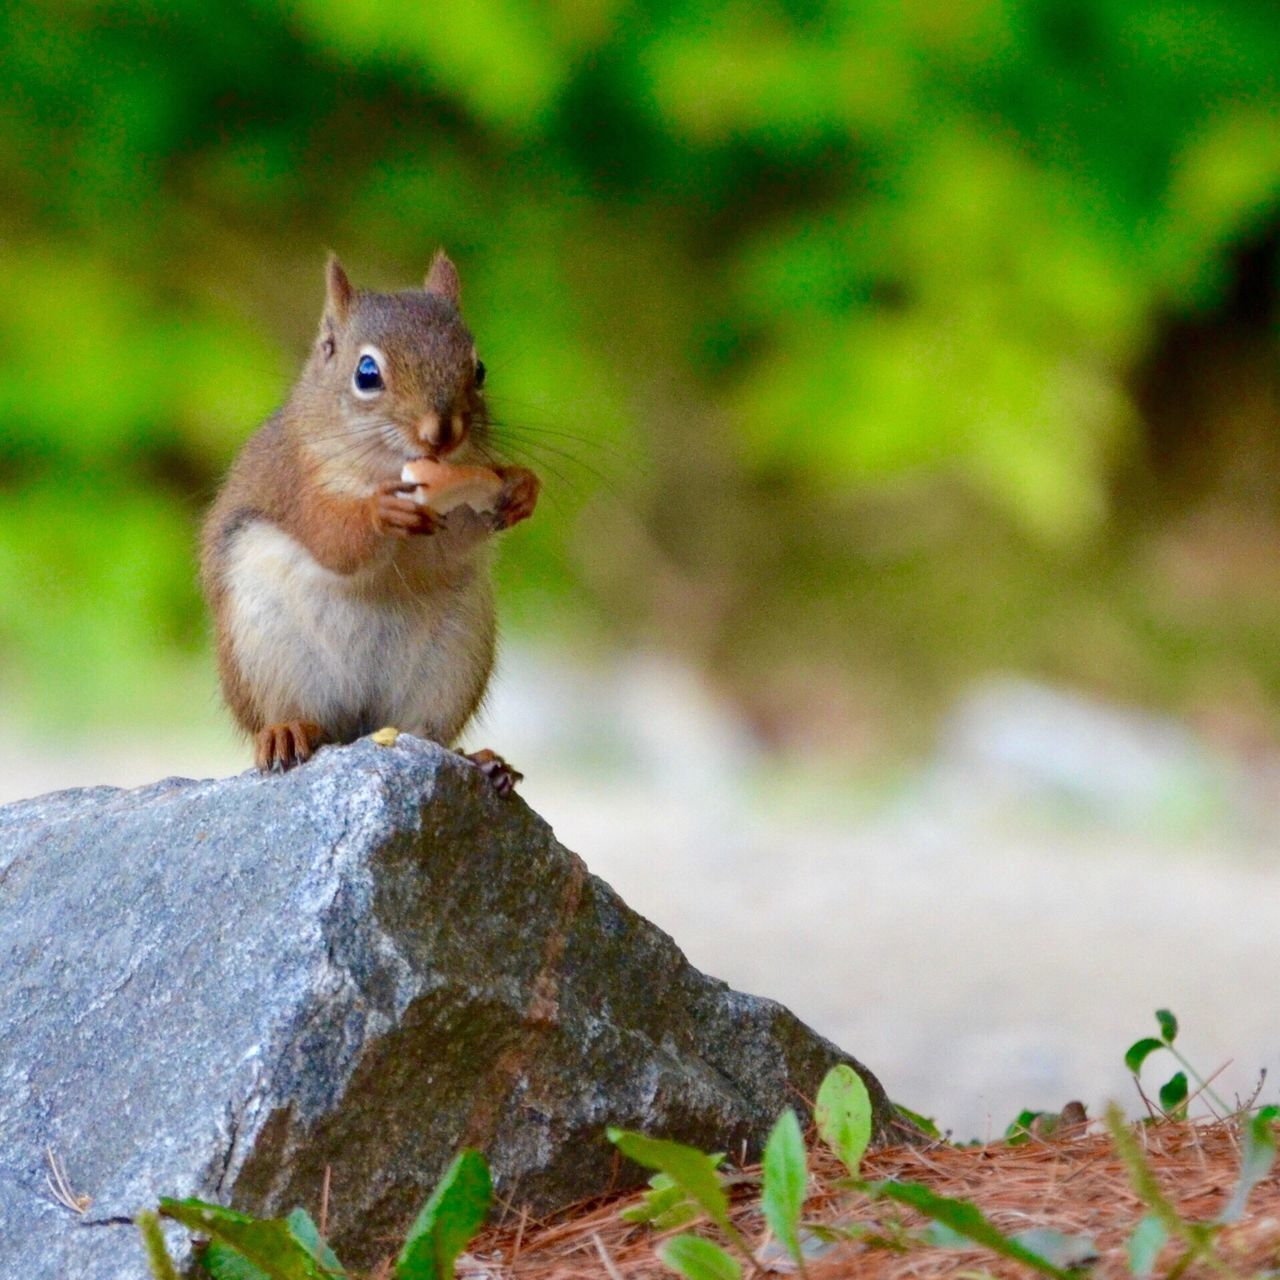 Red Squirrel Animal Themes One Animal Nature Squirrel Animals In The Wild Outdoors Mammal Rodent No People Animal Wildlife Close-up Day